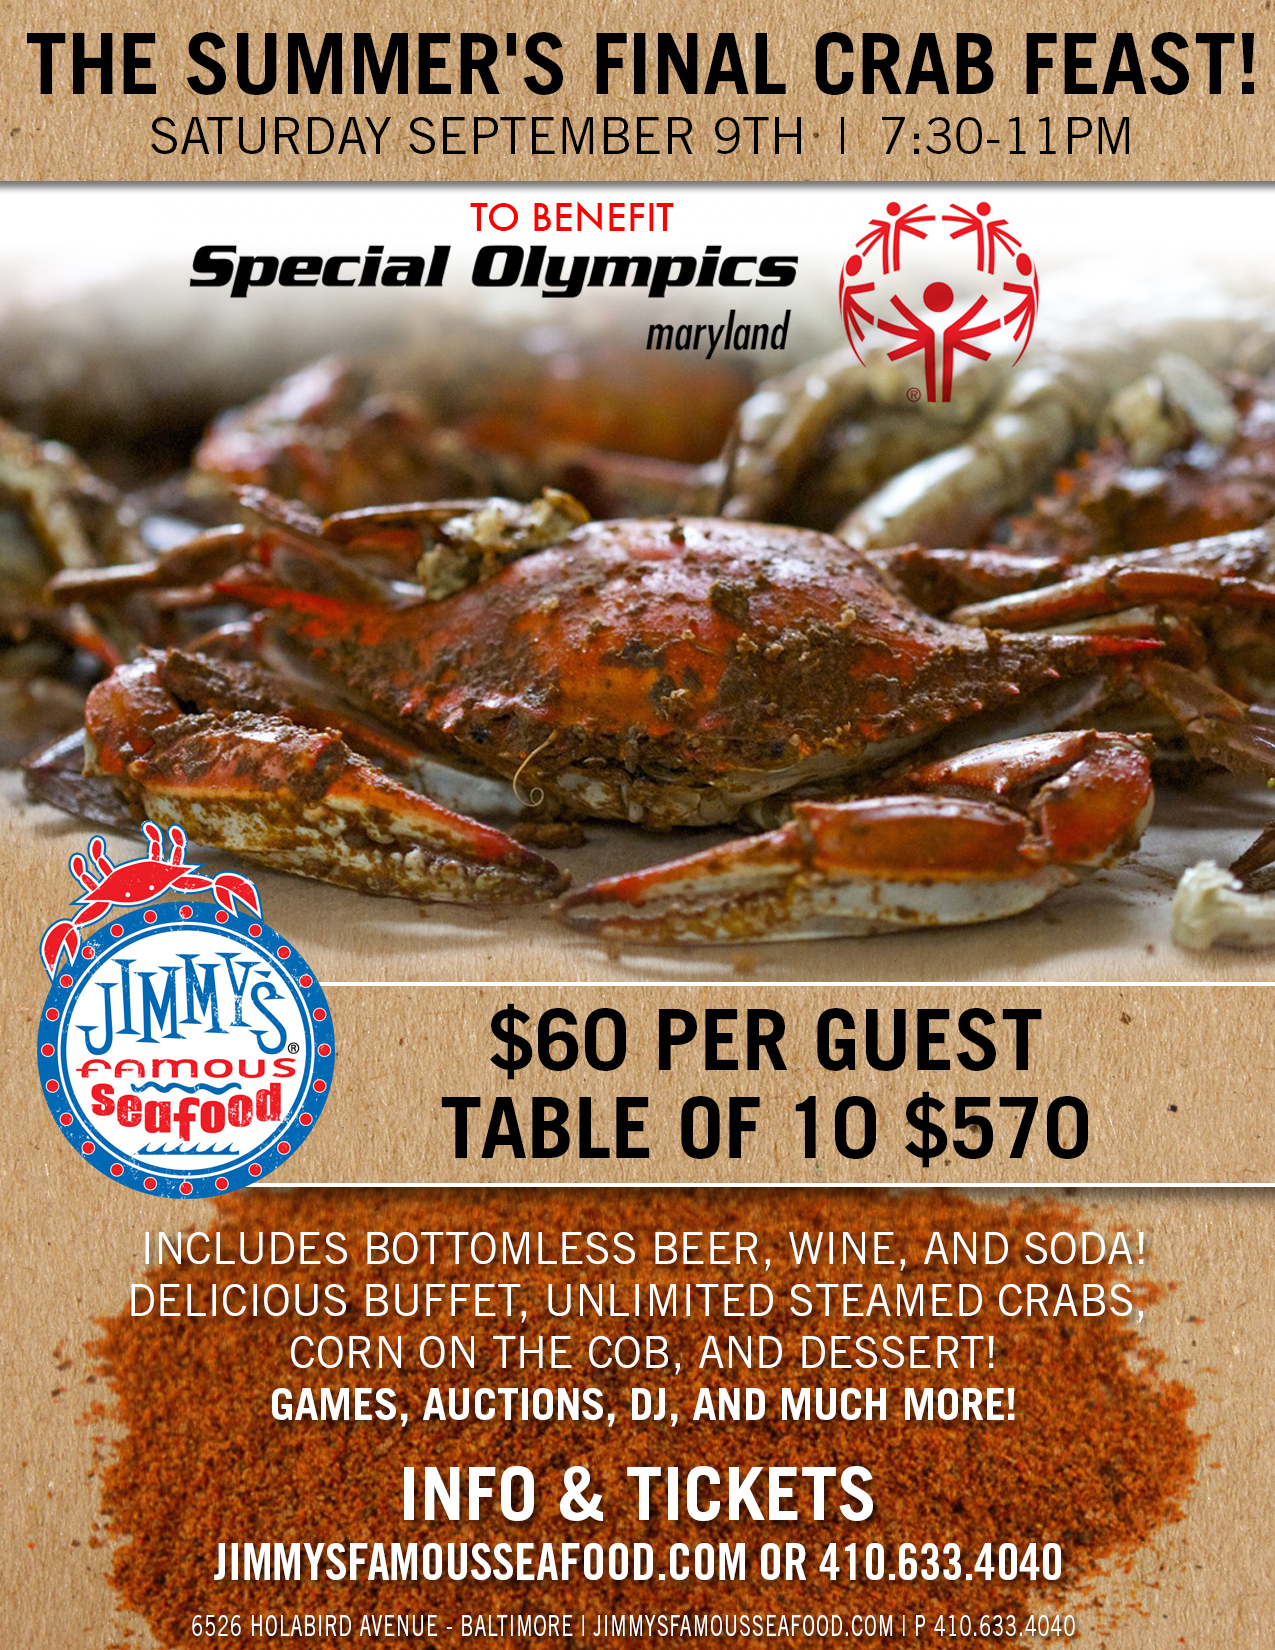 Jimmy crab - Florida beaches vacation